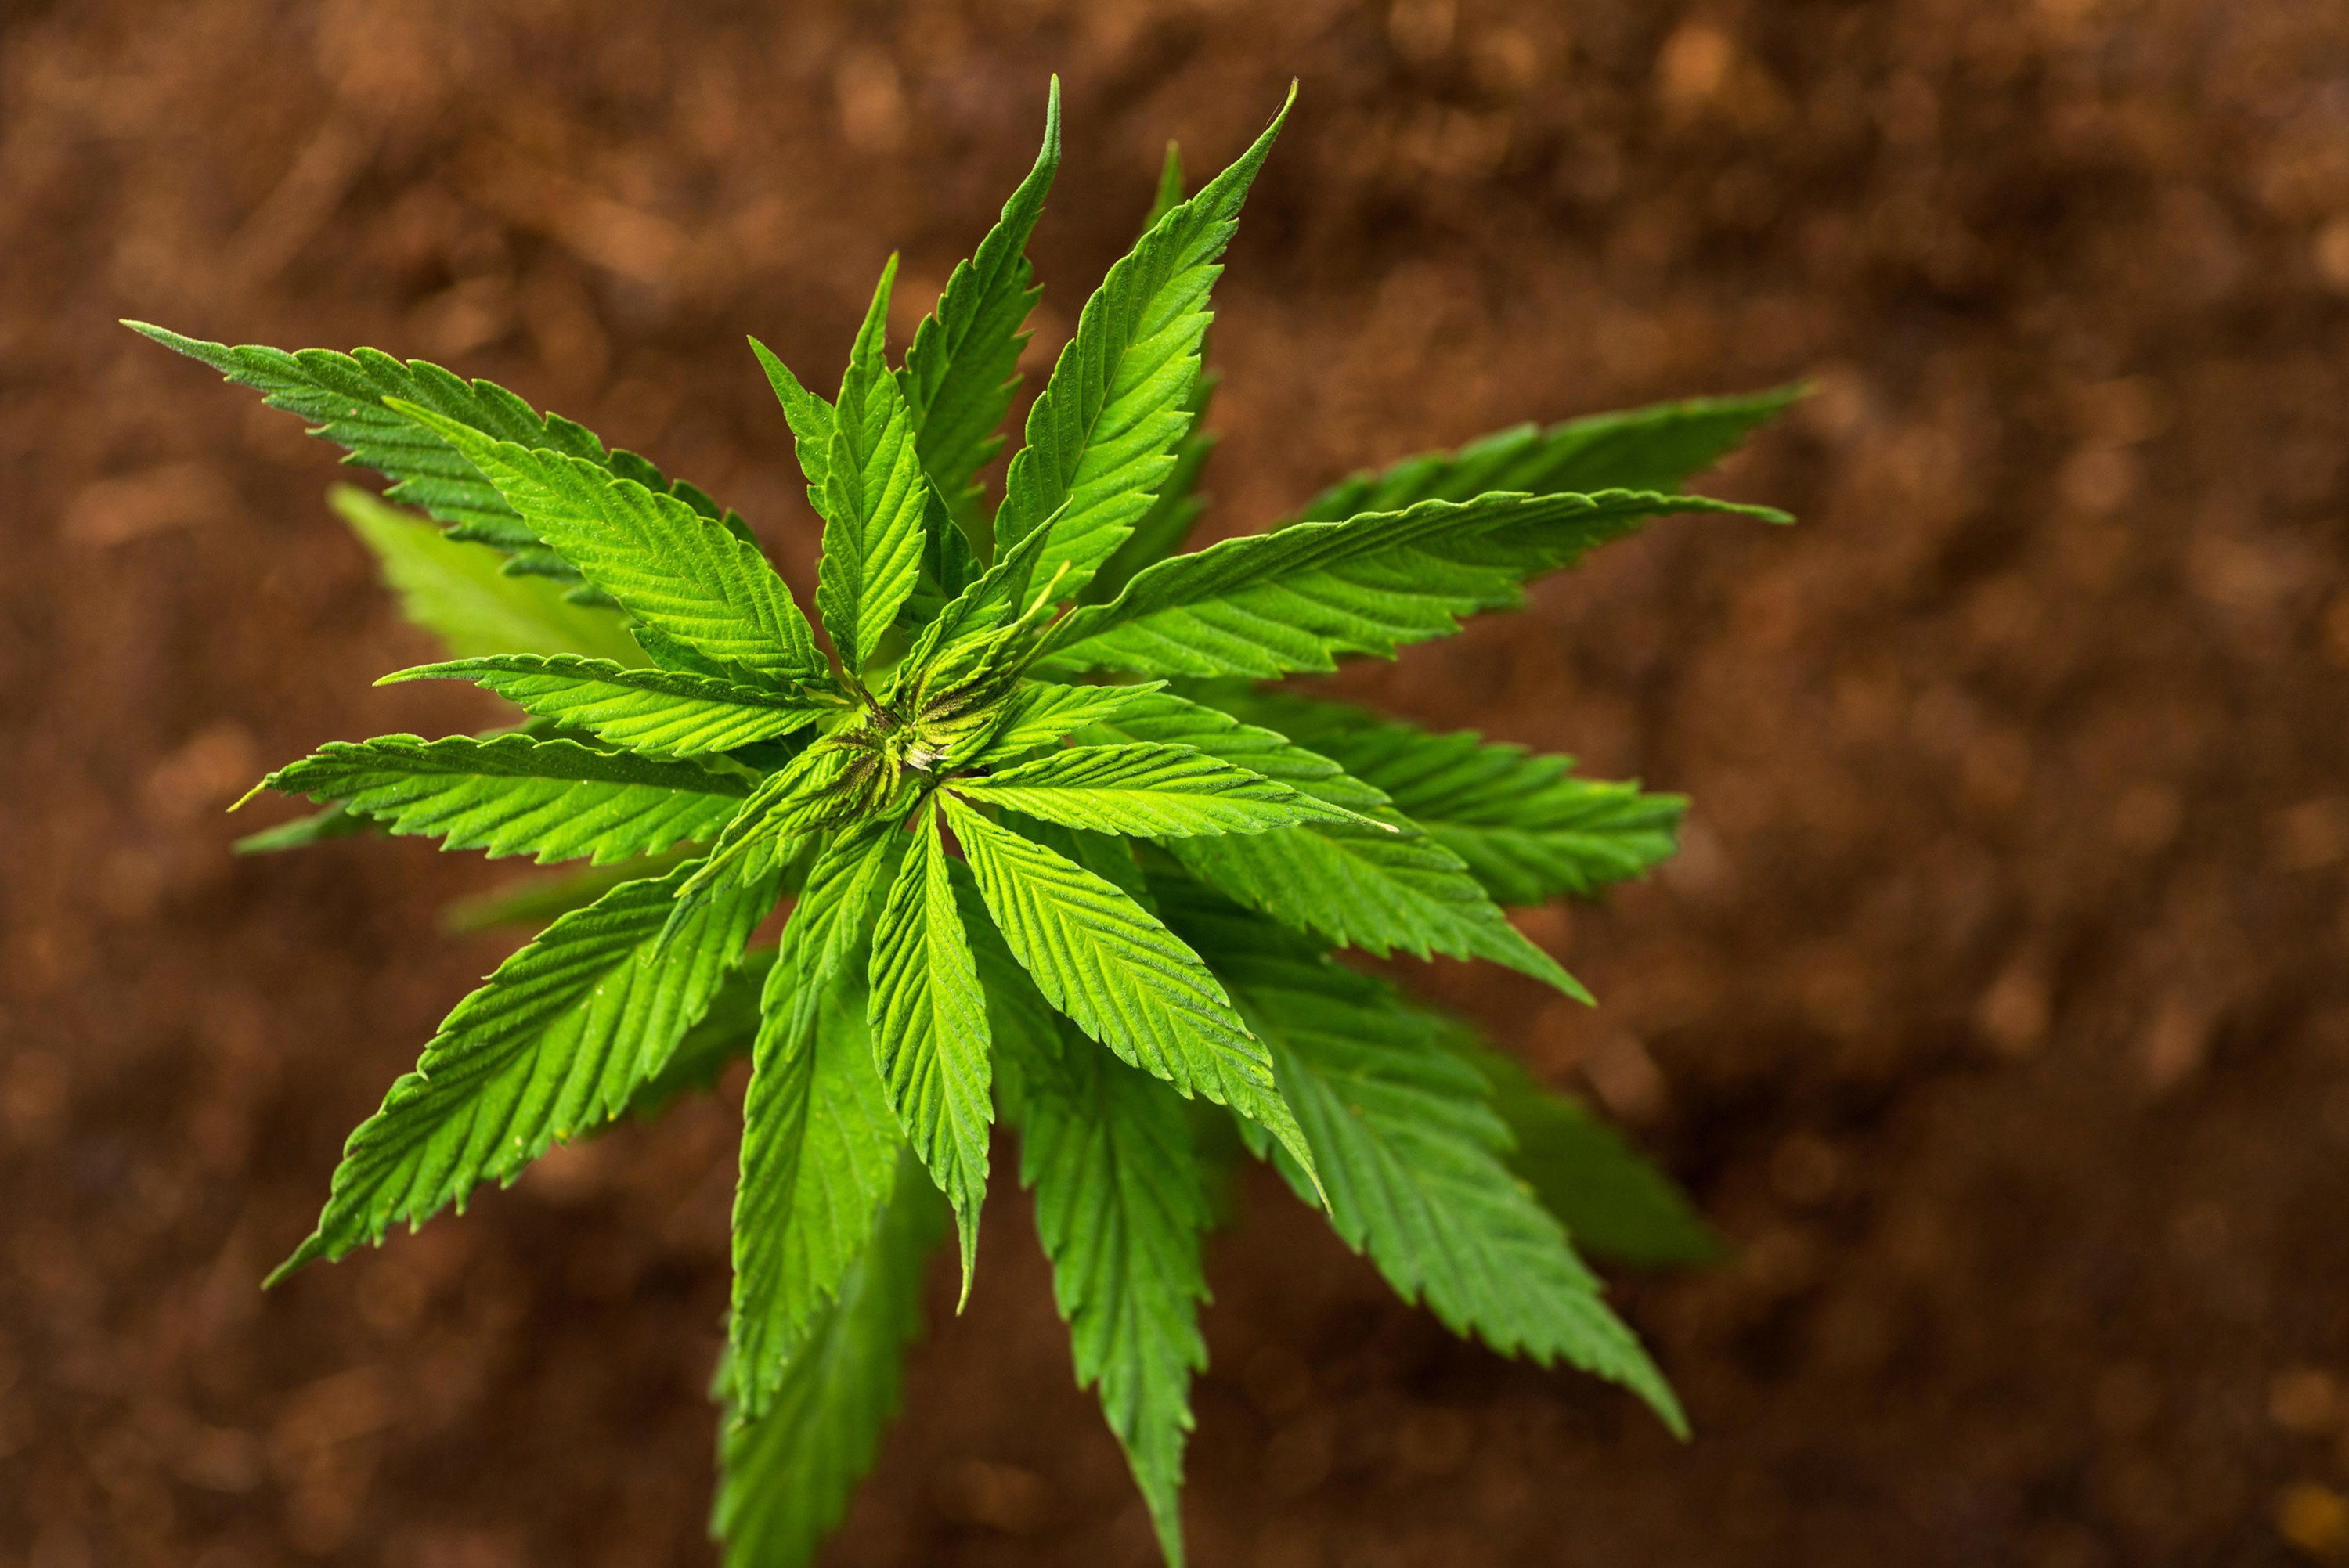 Pennsylvania S New Hemp Rules May Hurt Early Farmers But Boost The Industry